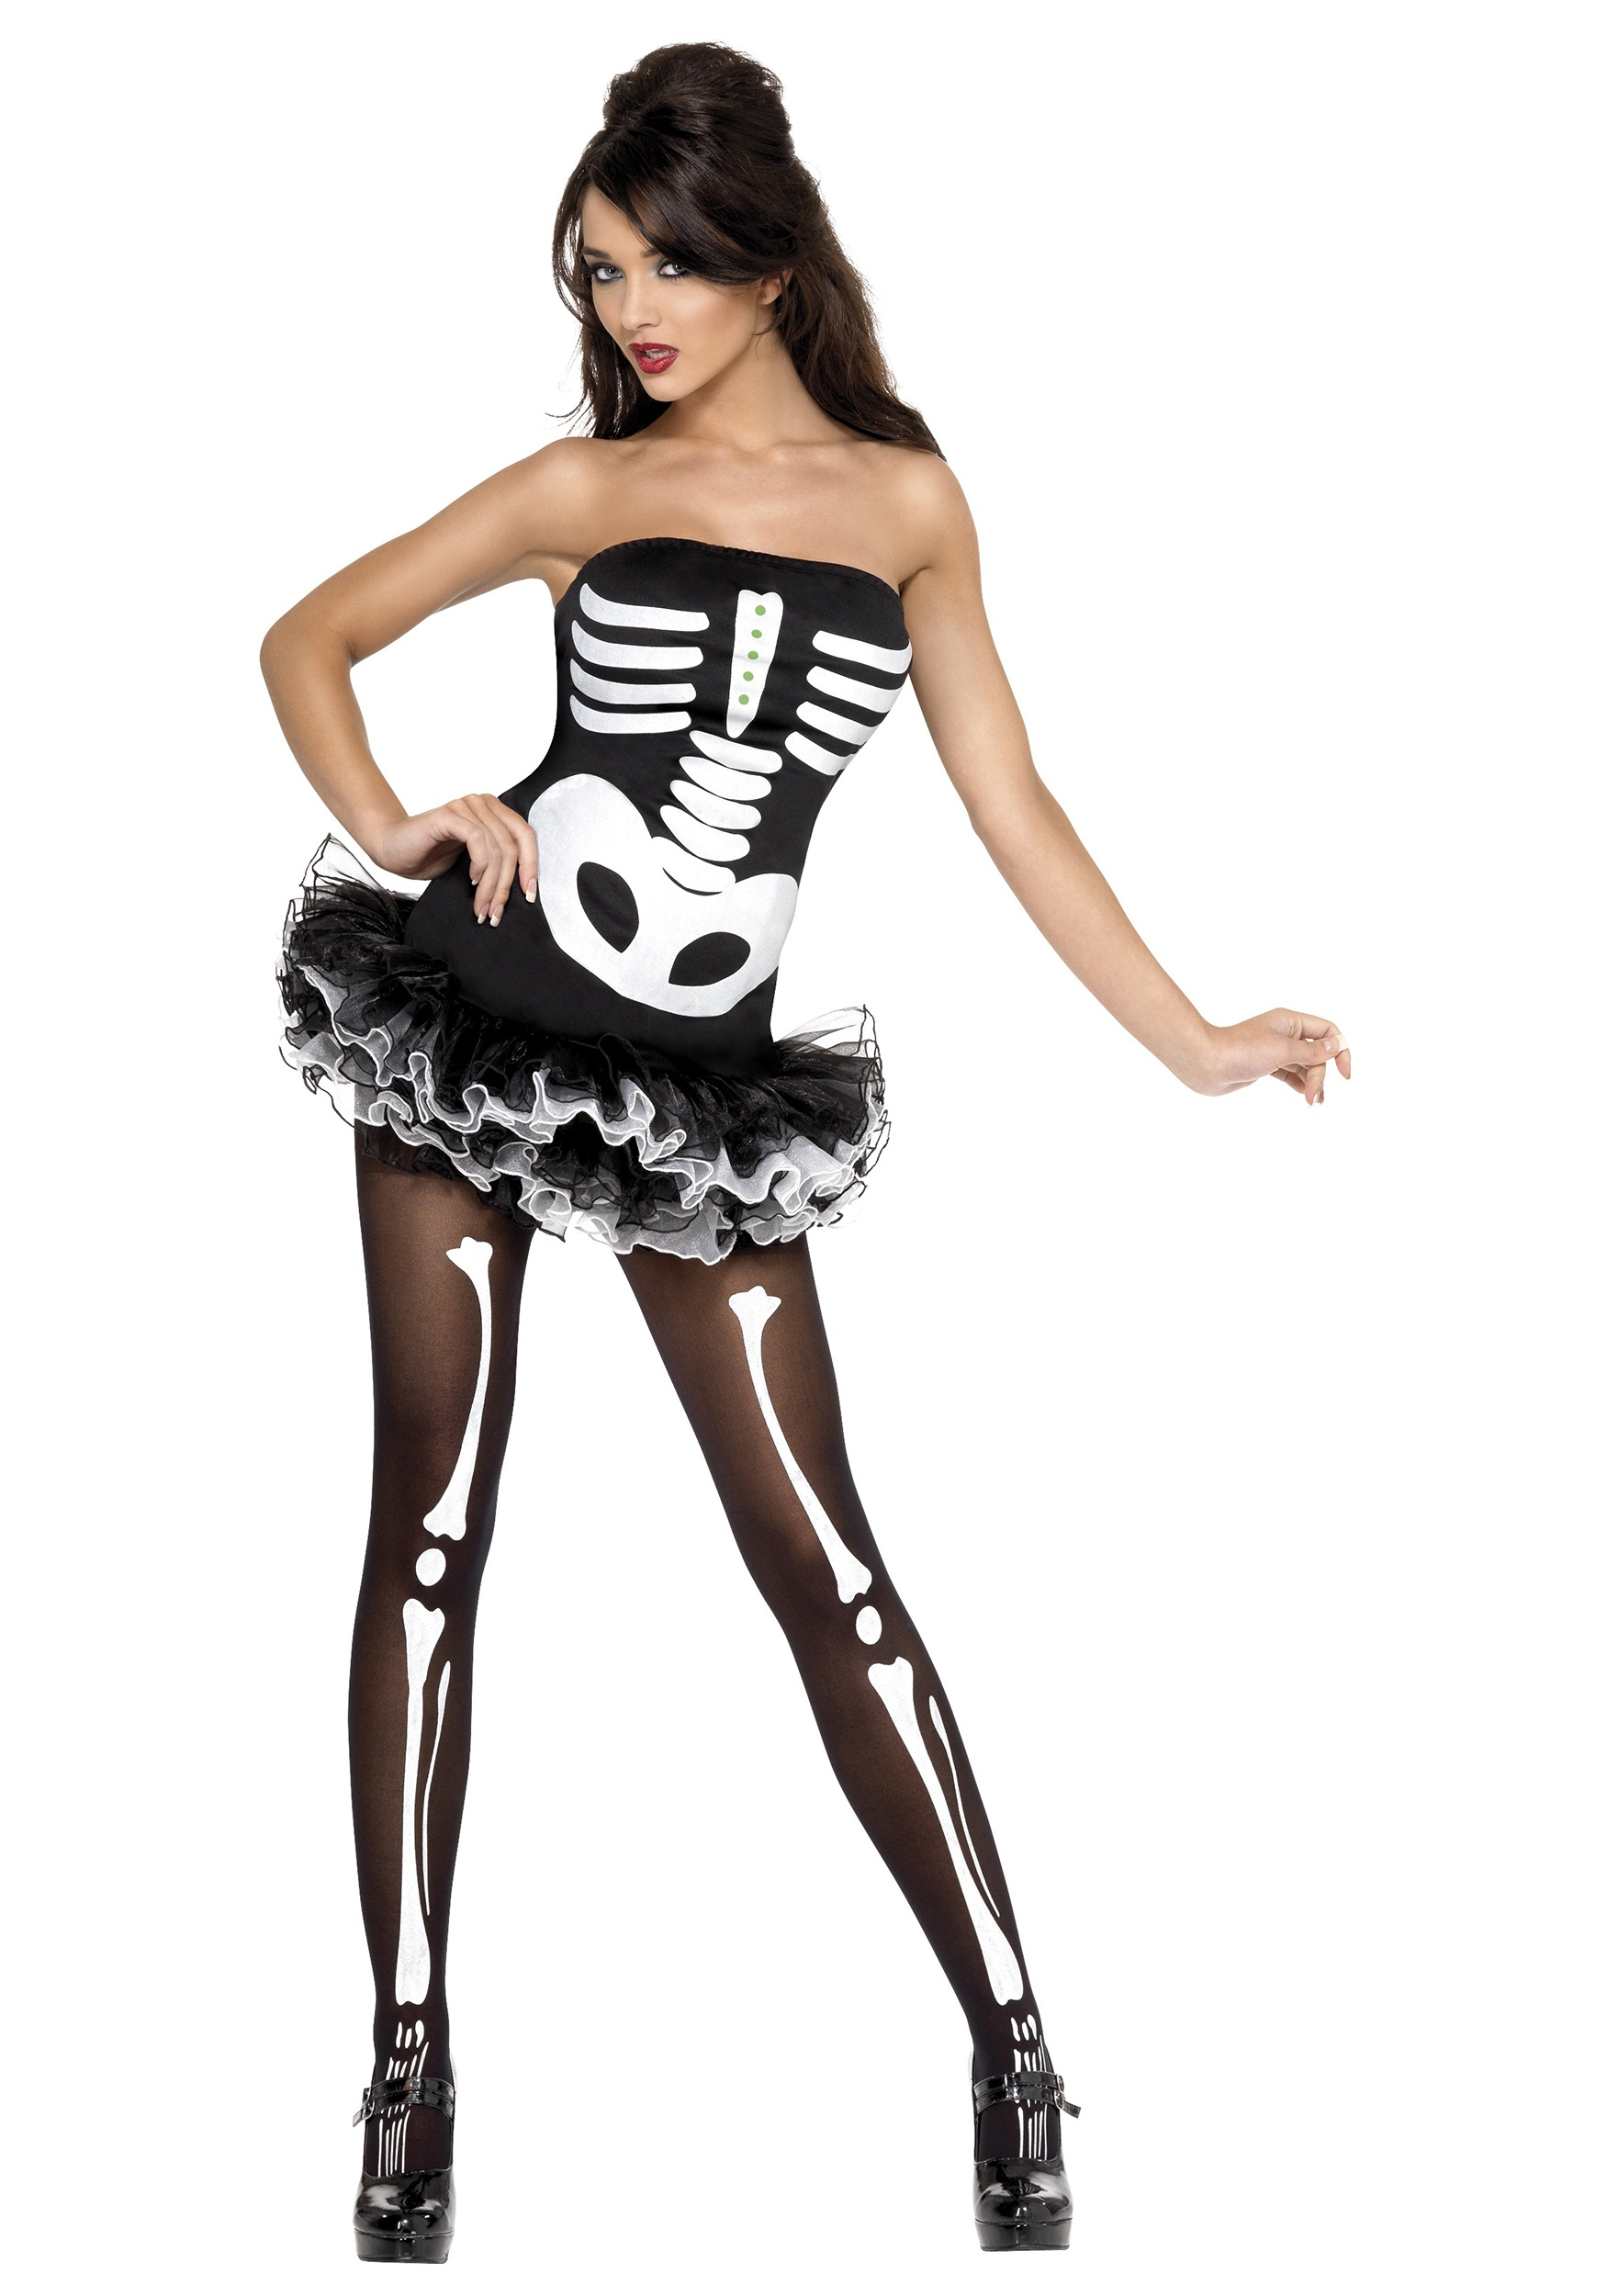 Boo! The best costume deals are like candy in your inbox!